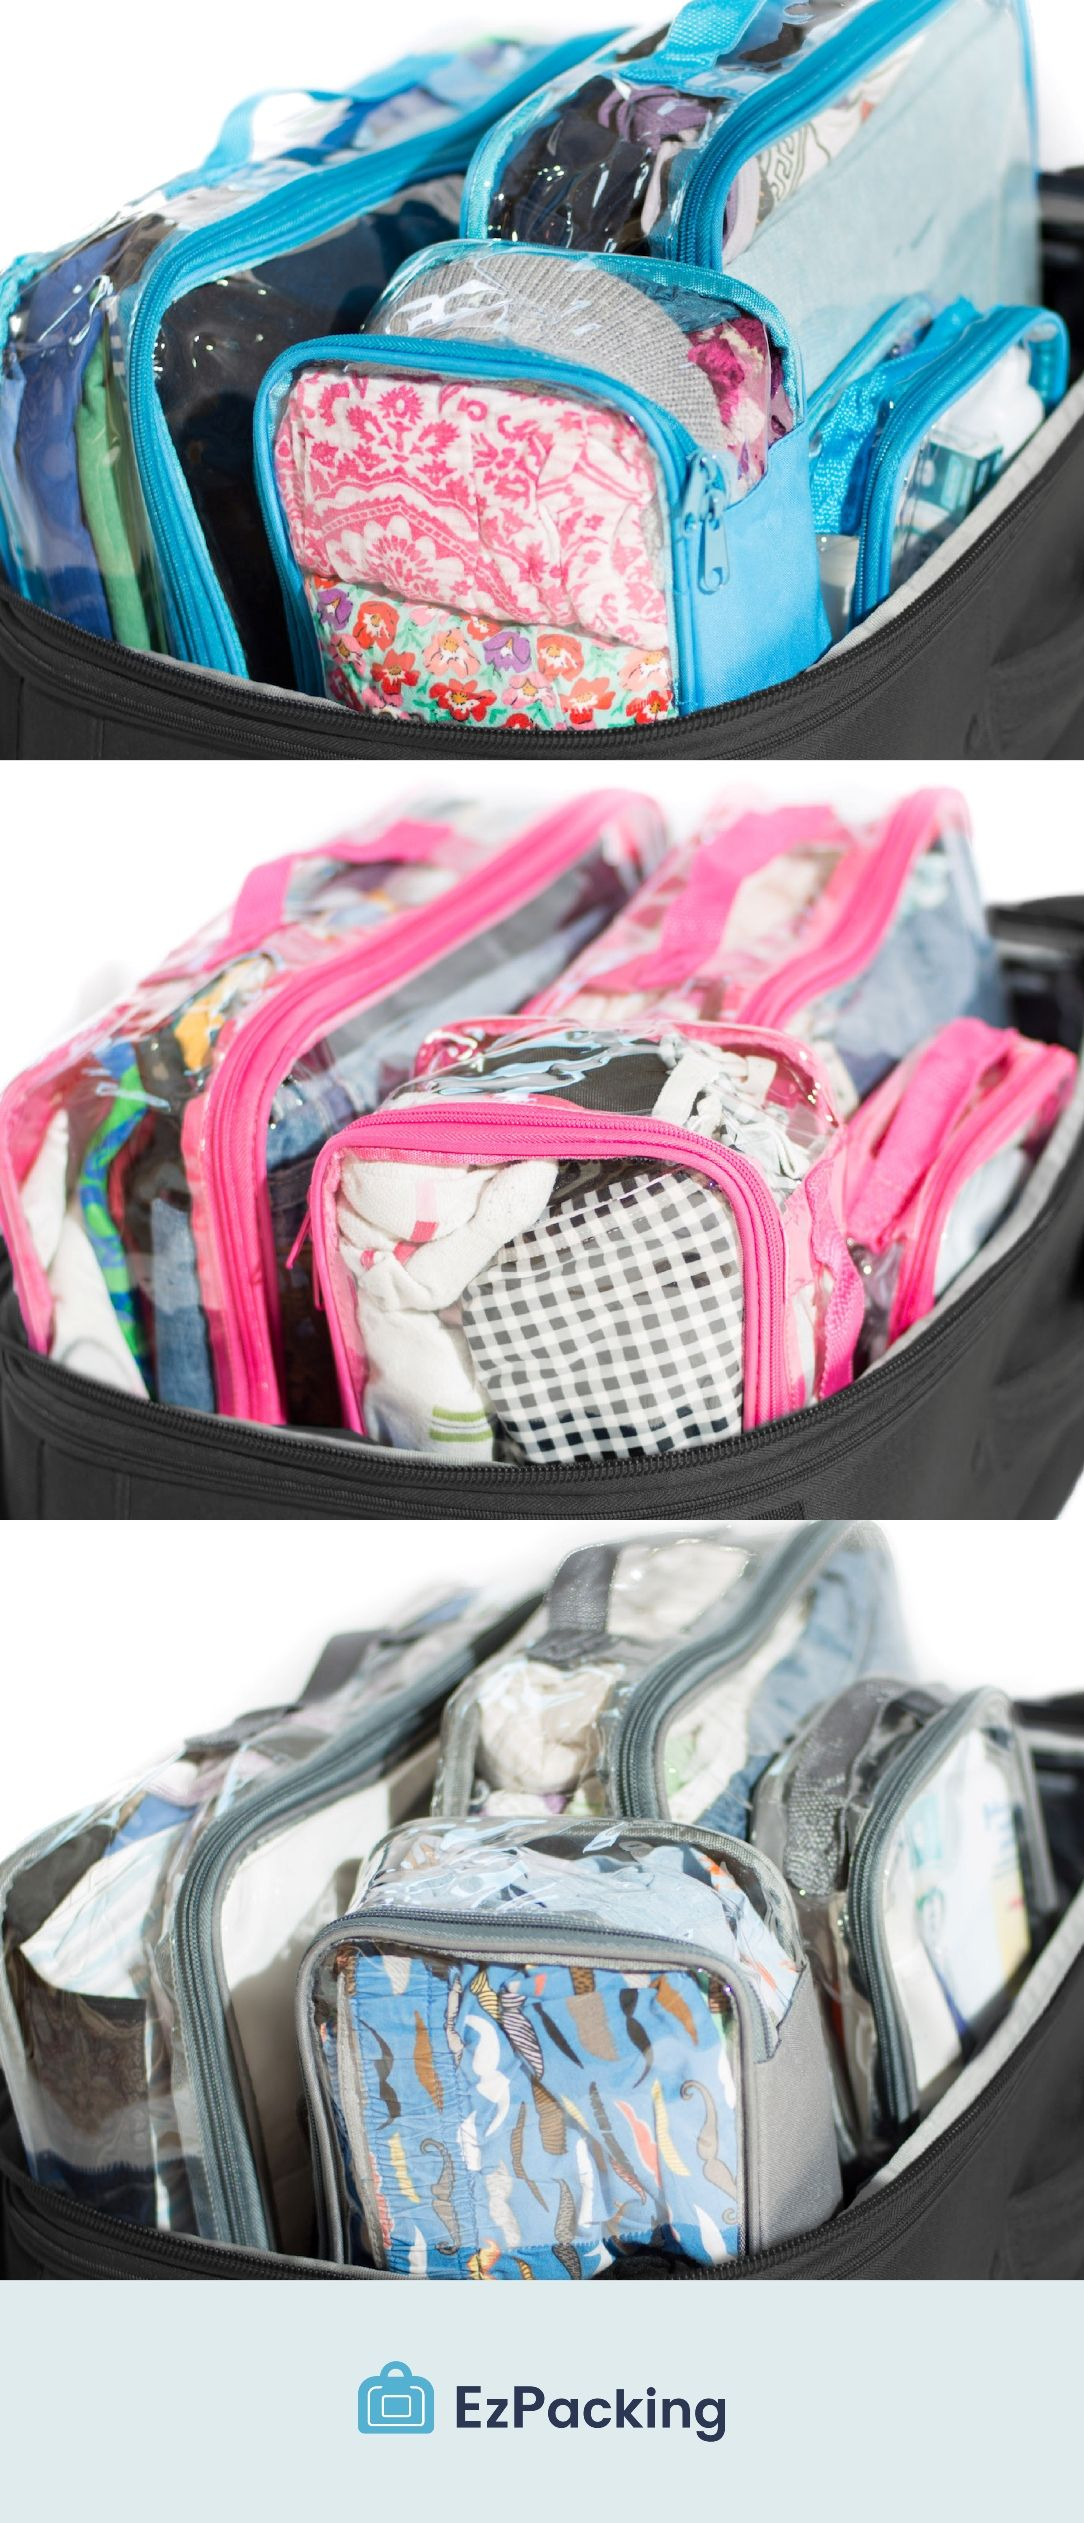 4b7f64e60 Best Clear Packing Cube System for Organized Kids Suitcases | ideas ...